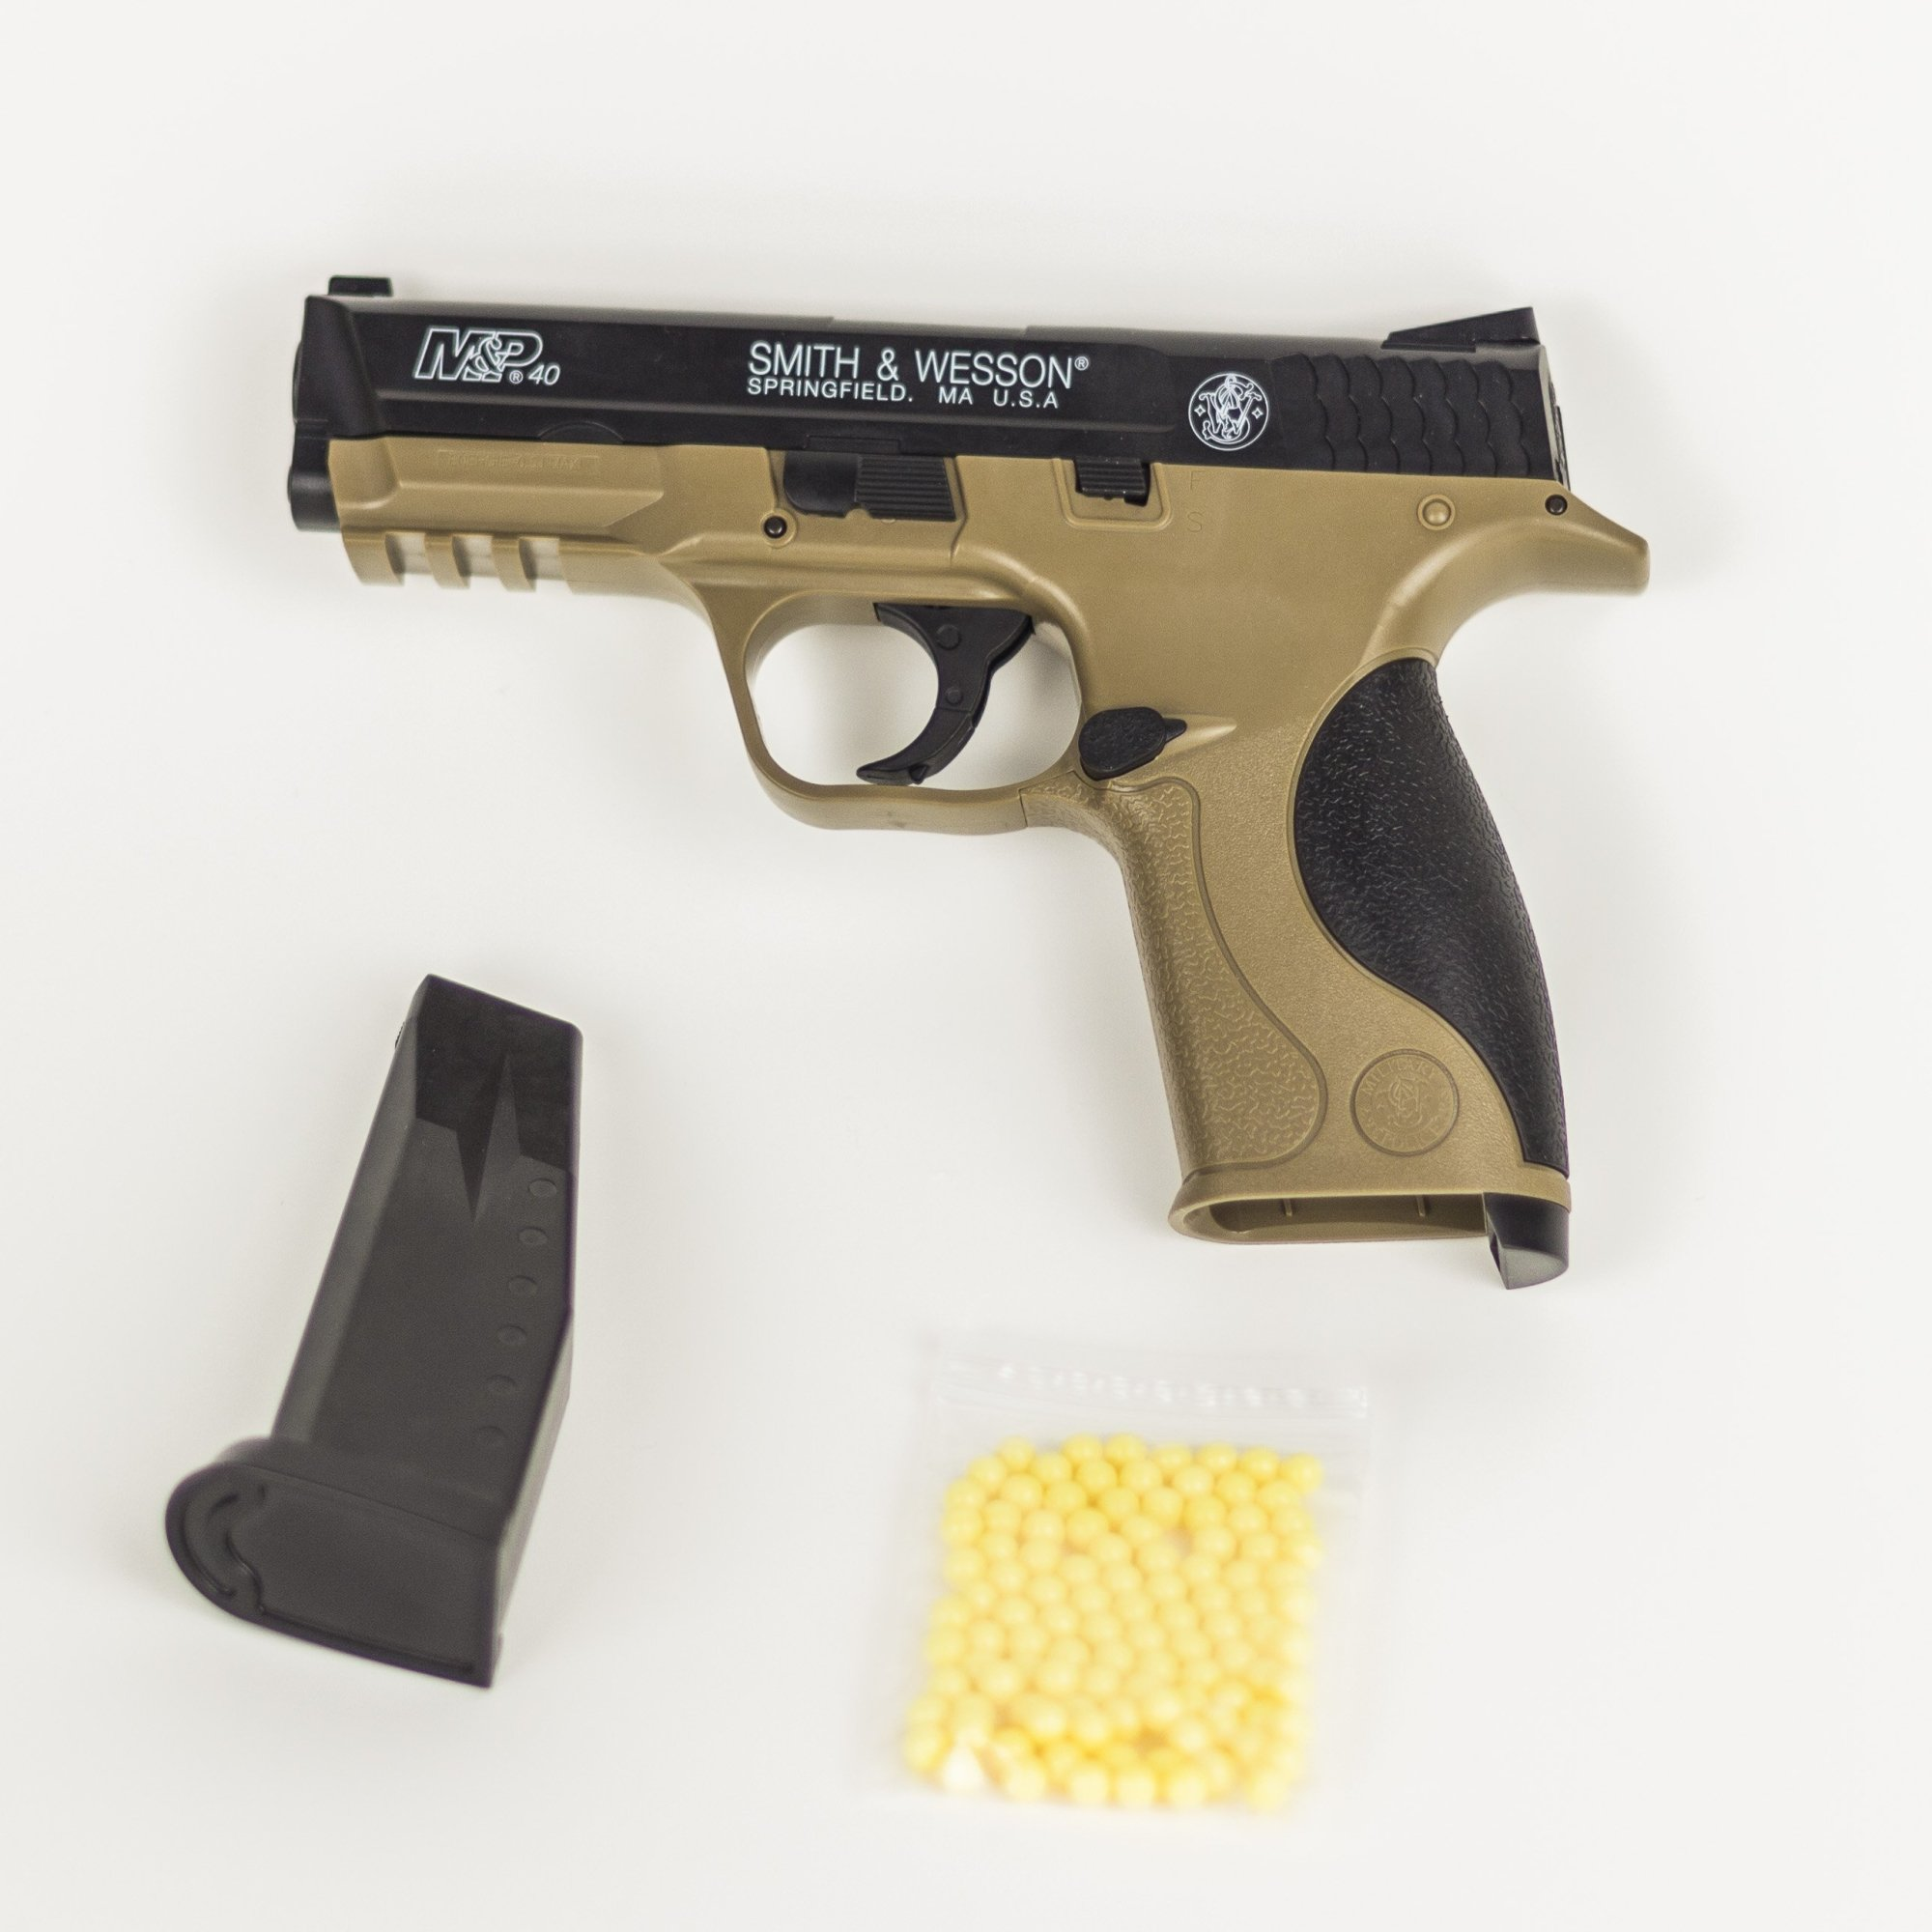 MP40 Smith et Wesson® - www.pistolet-a-billes.com